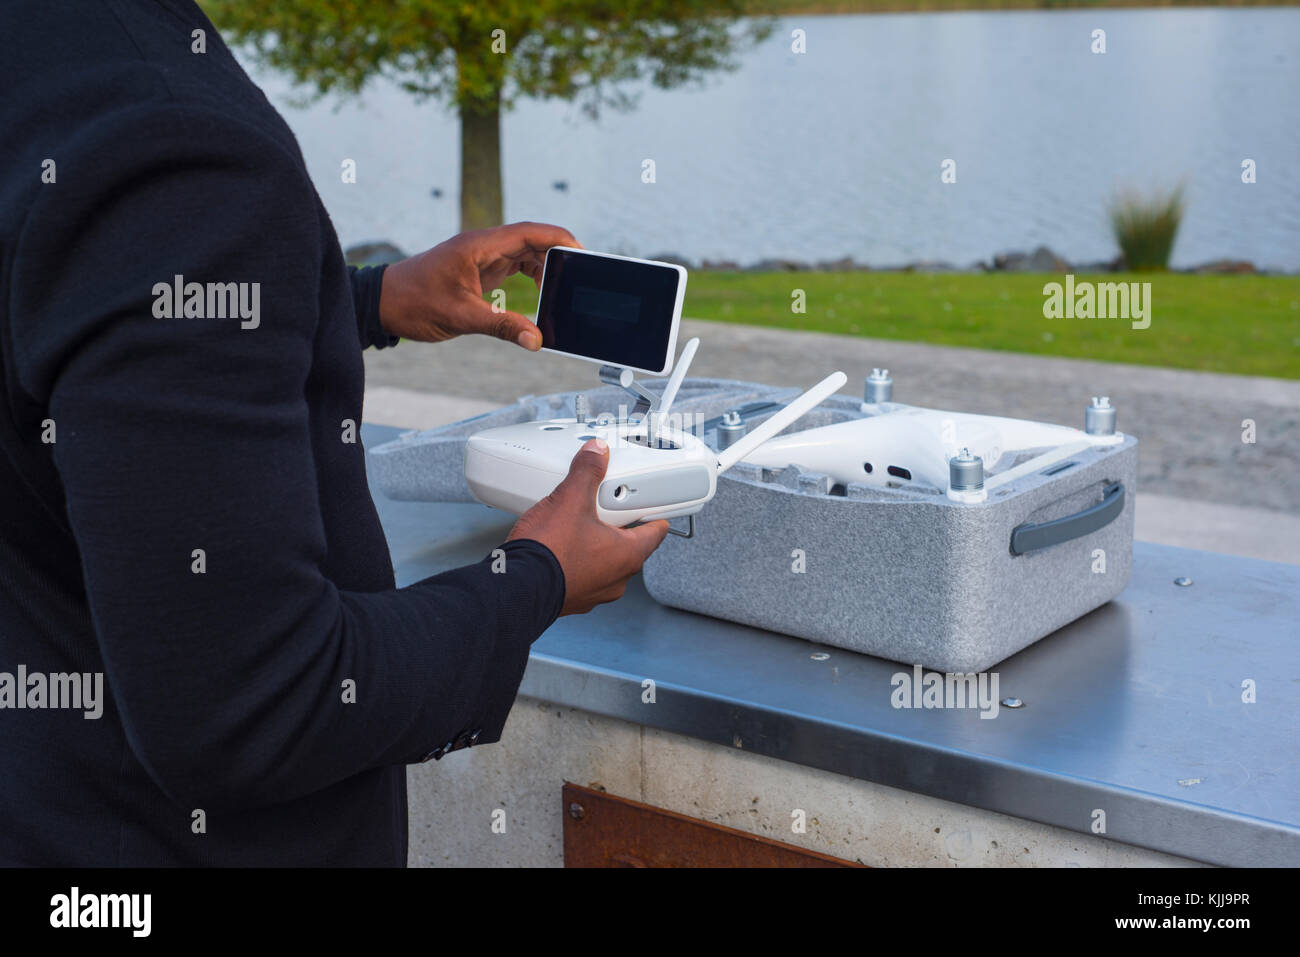 Drone equipment near a lake and the drone box delivered package - Stock Image